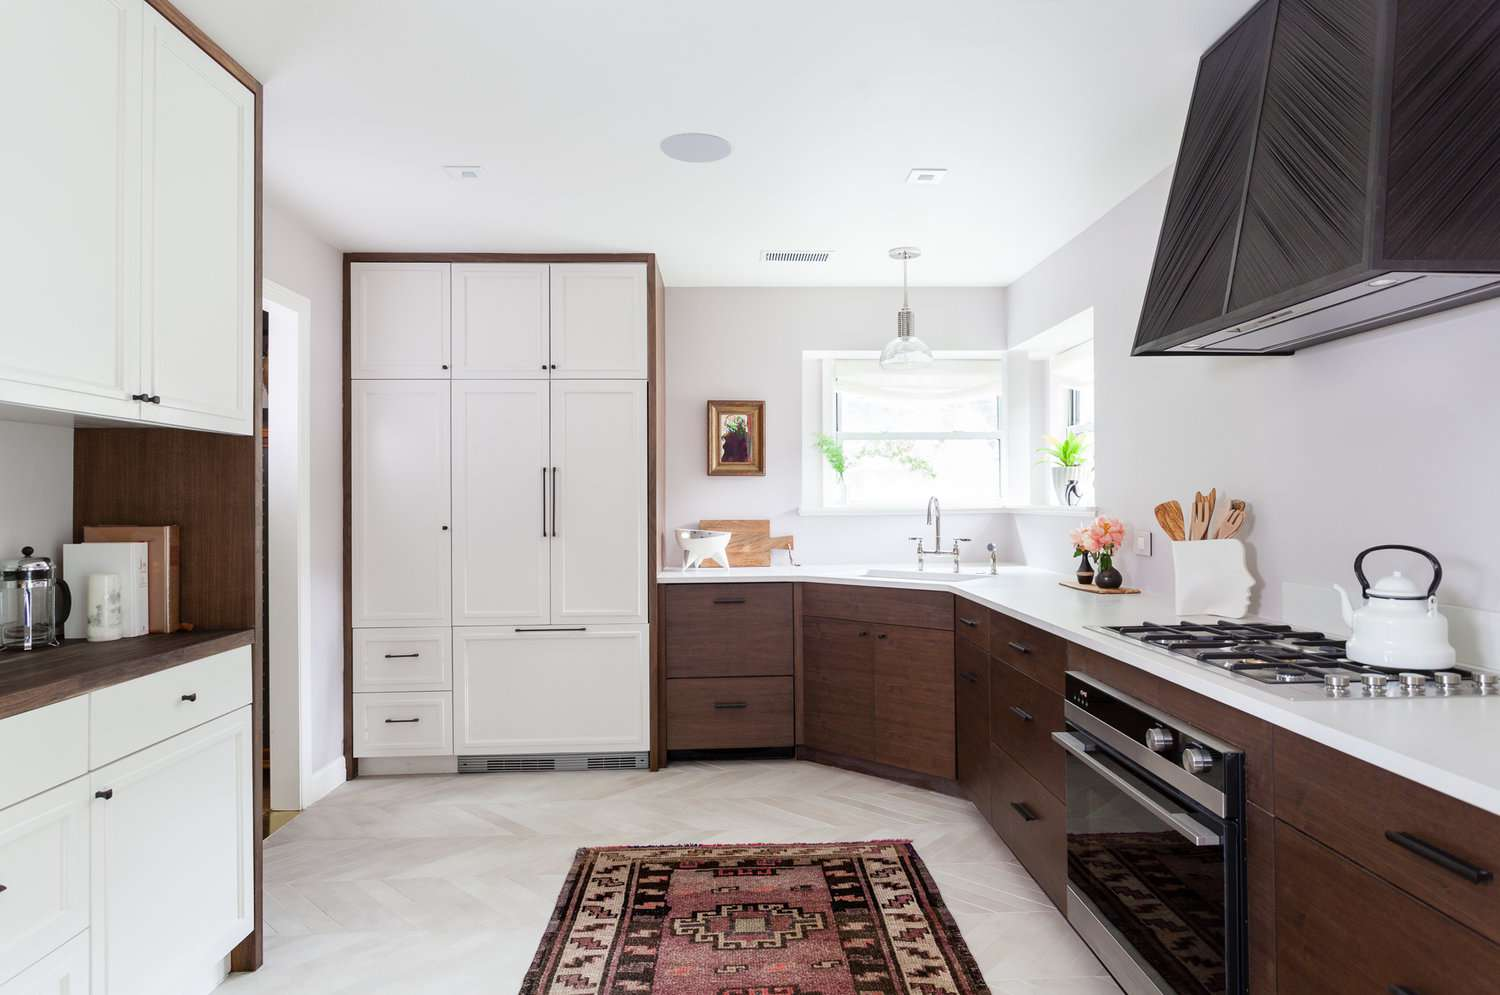 A large kitchen with cabinets that span all three walls